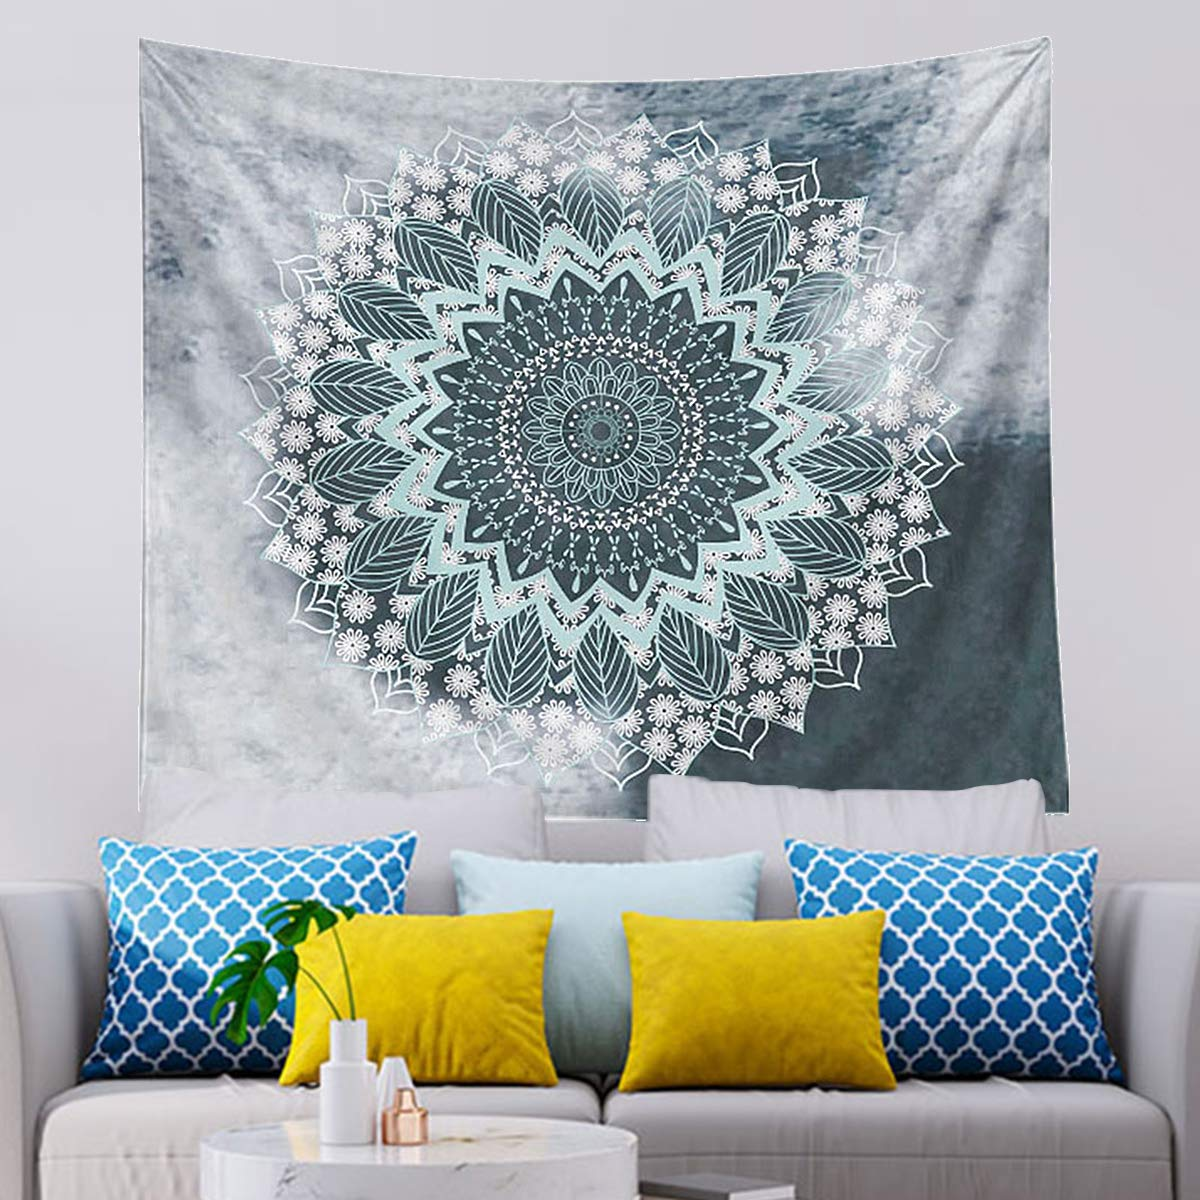 Buy Tapestry Wall Hanging 51 X 59 Inches Art Hippie Bohemian Flower Tapestry Wall Hanging For Living Room Bedroom Dorm Decor 5159 Inches Grey Online At Low Prices In India Amazon In